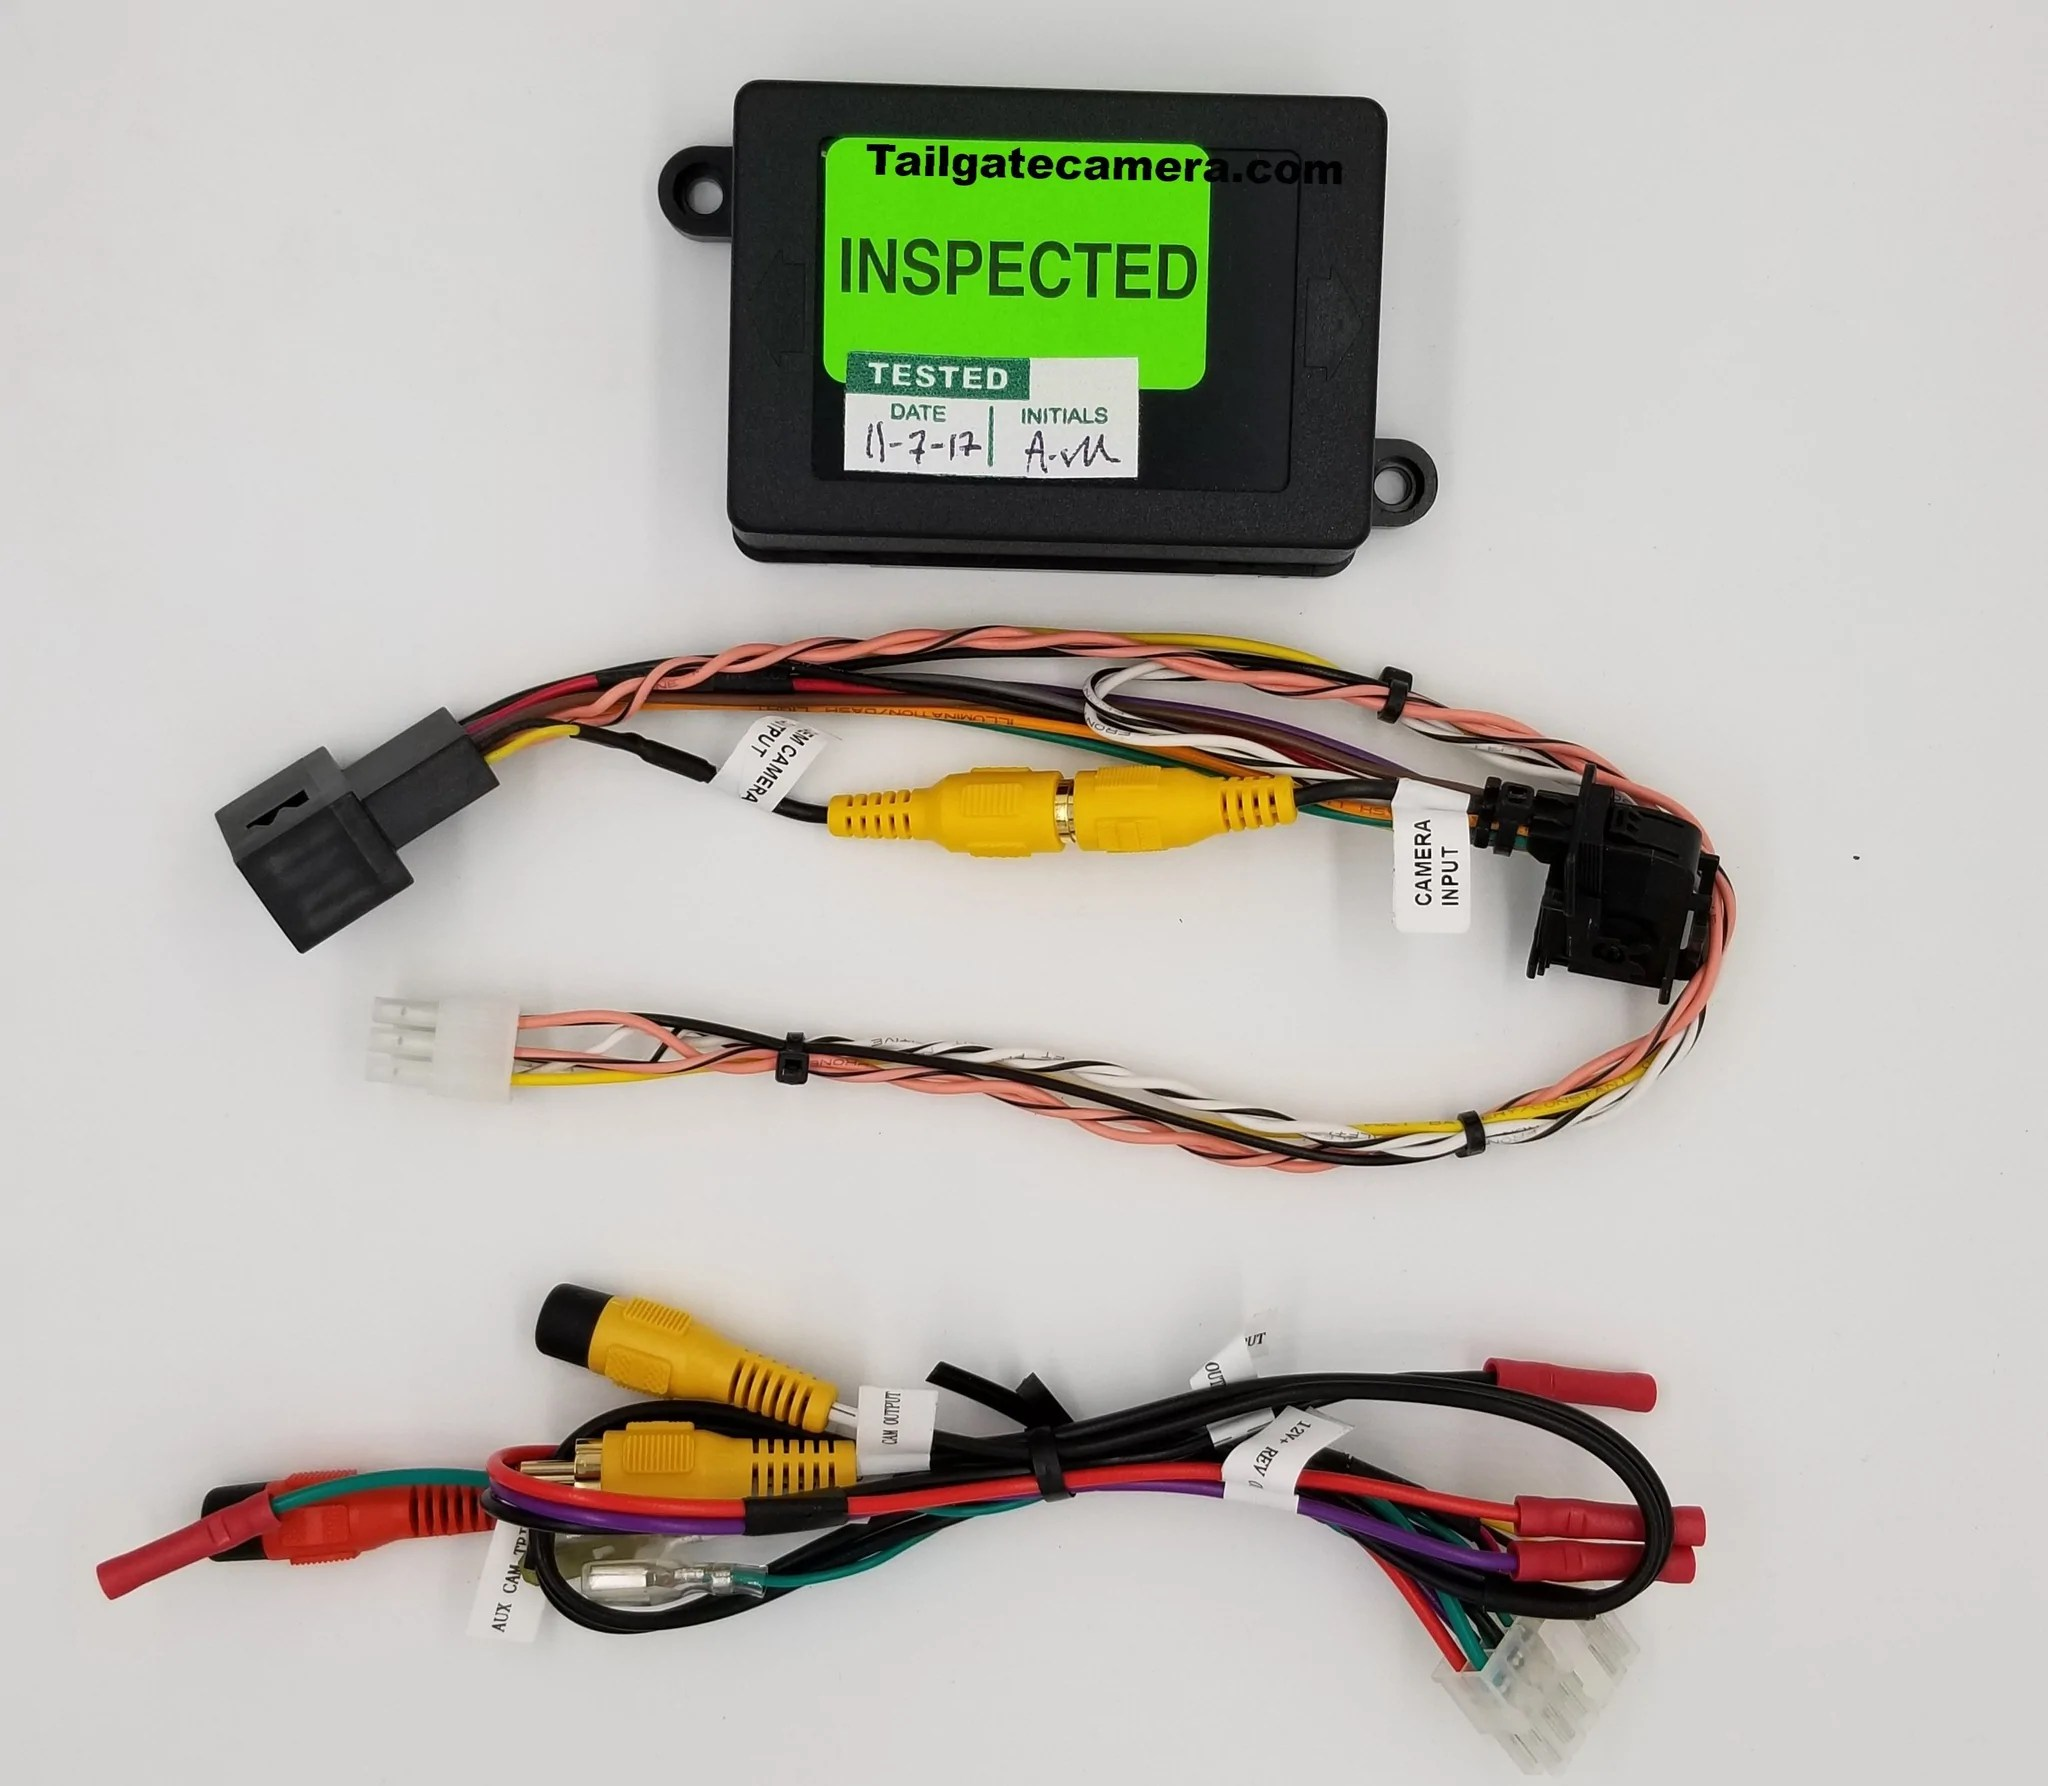 medium resolution of ford backup camera wiring harness diagram data schema ford tailgate camera wiring harness 2013 16 backup